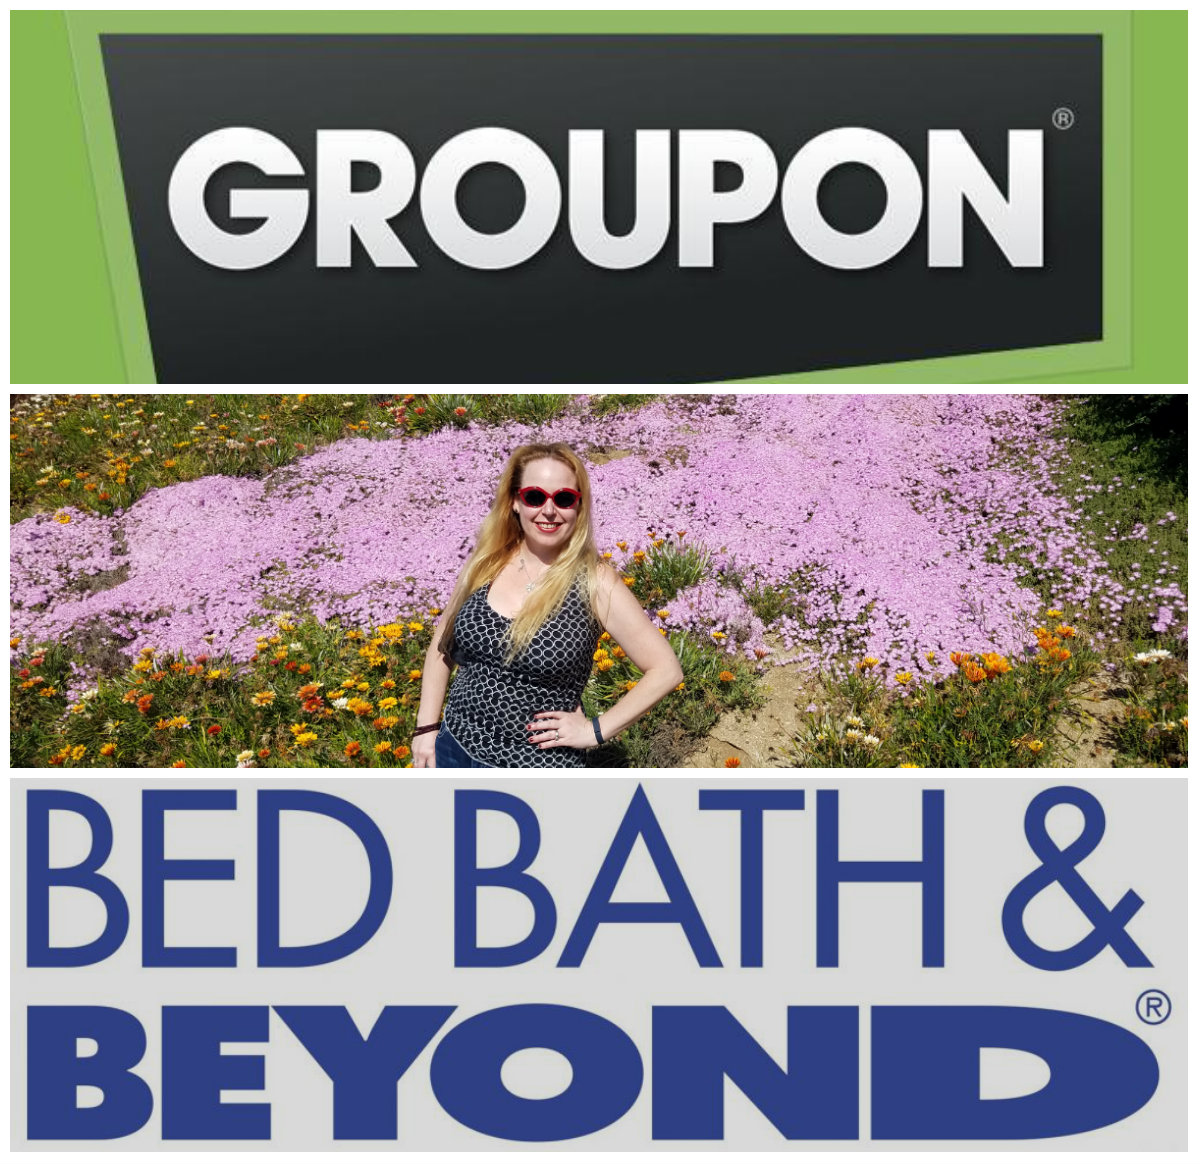 To Bed Bath And Beyond: Groupon Coupons Deals Aplenty Including Bed, Bath Beyond